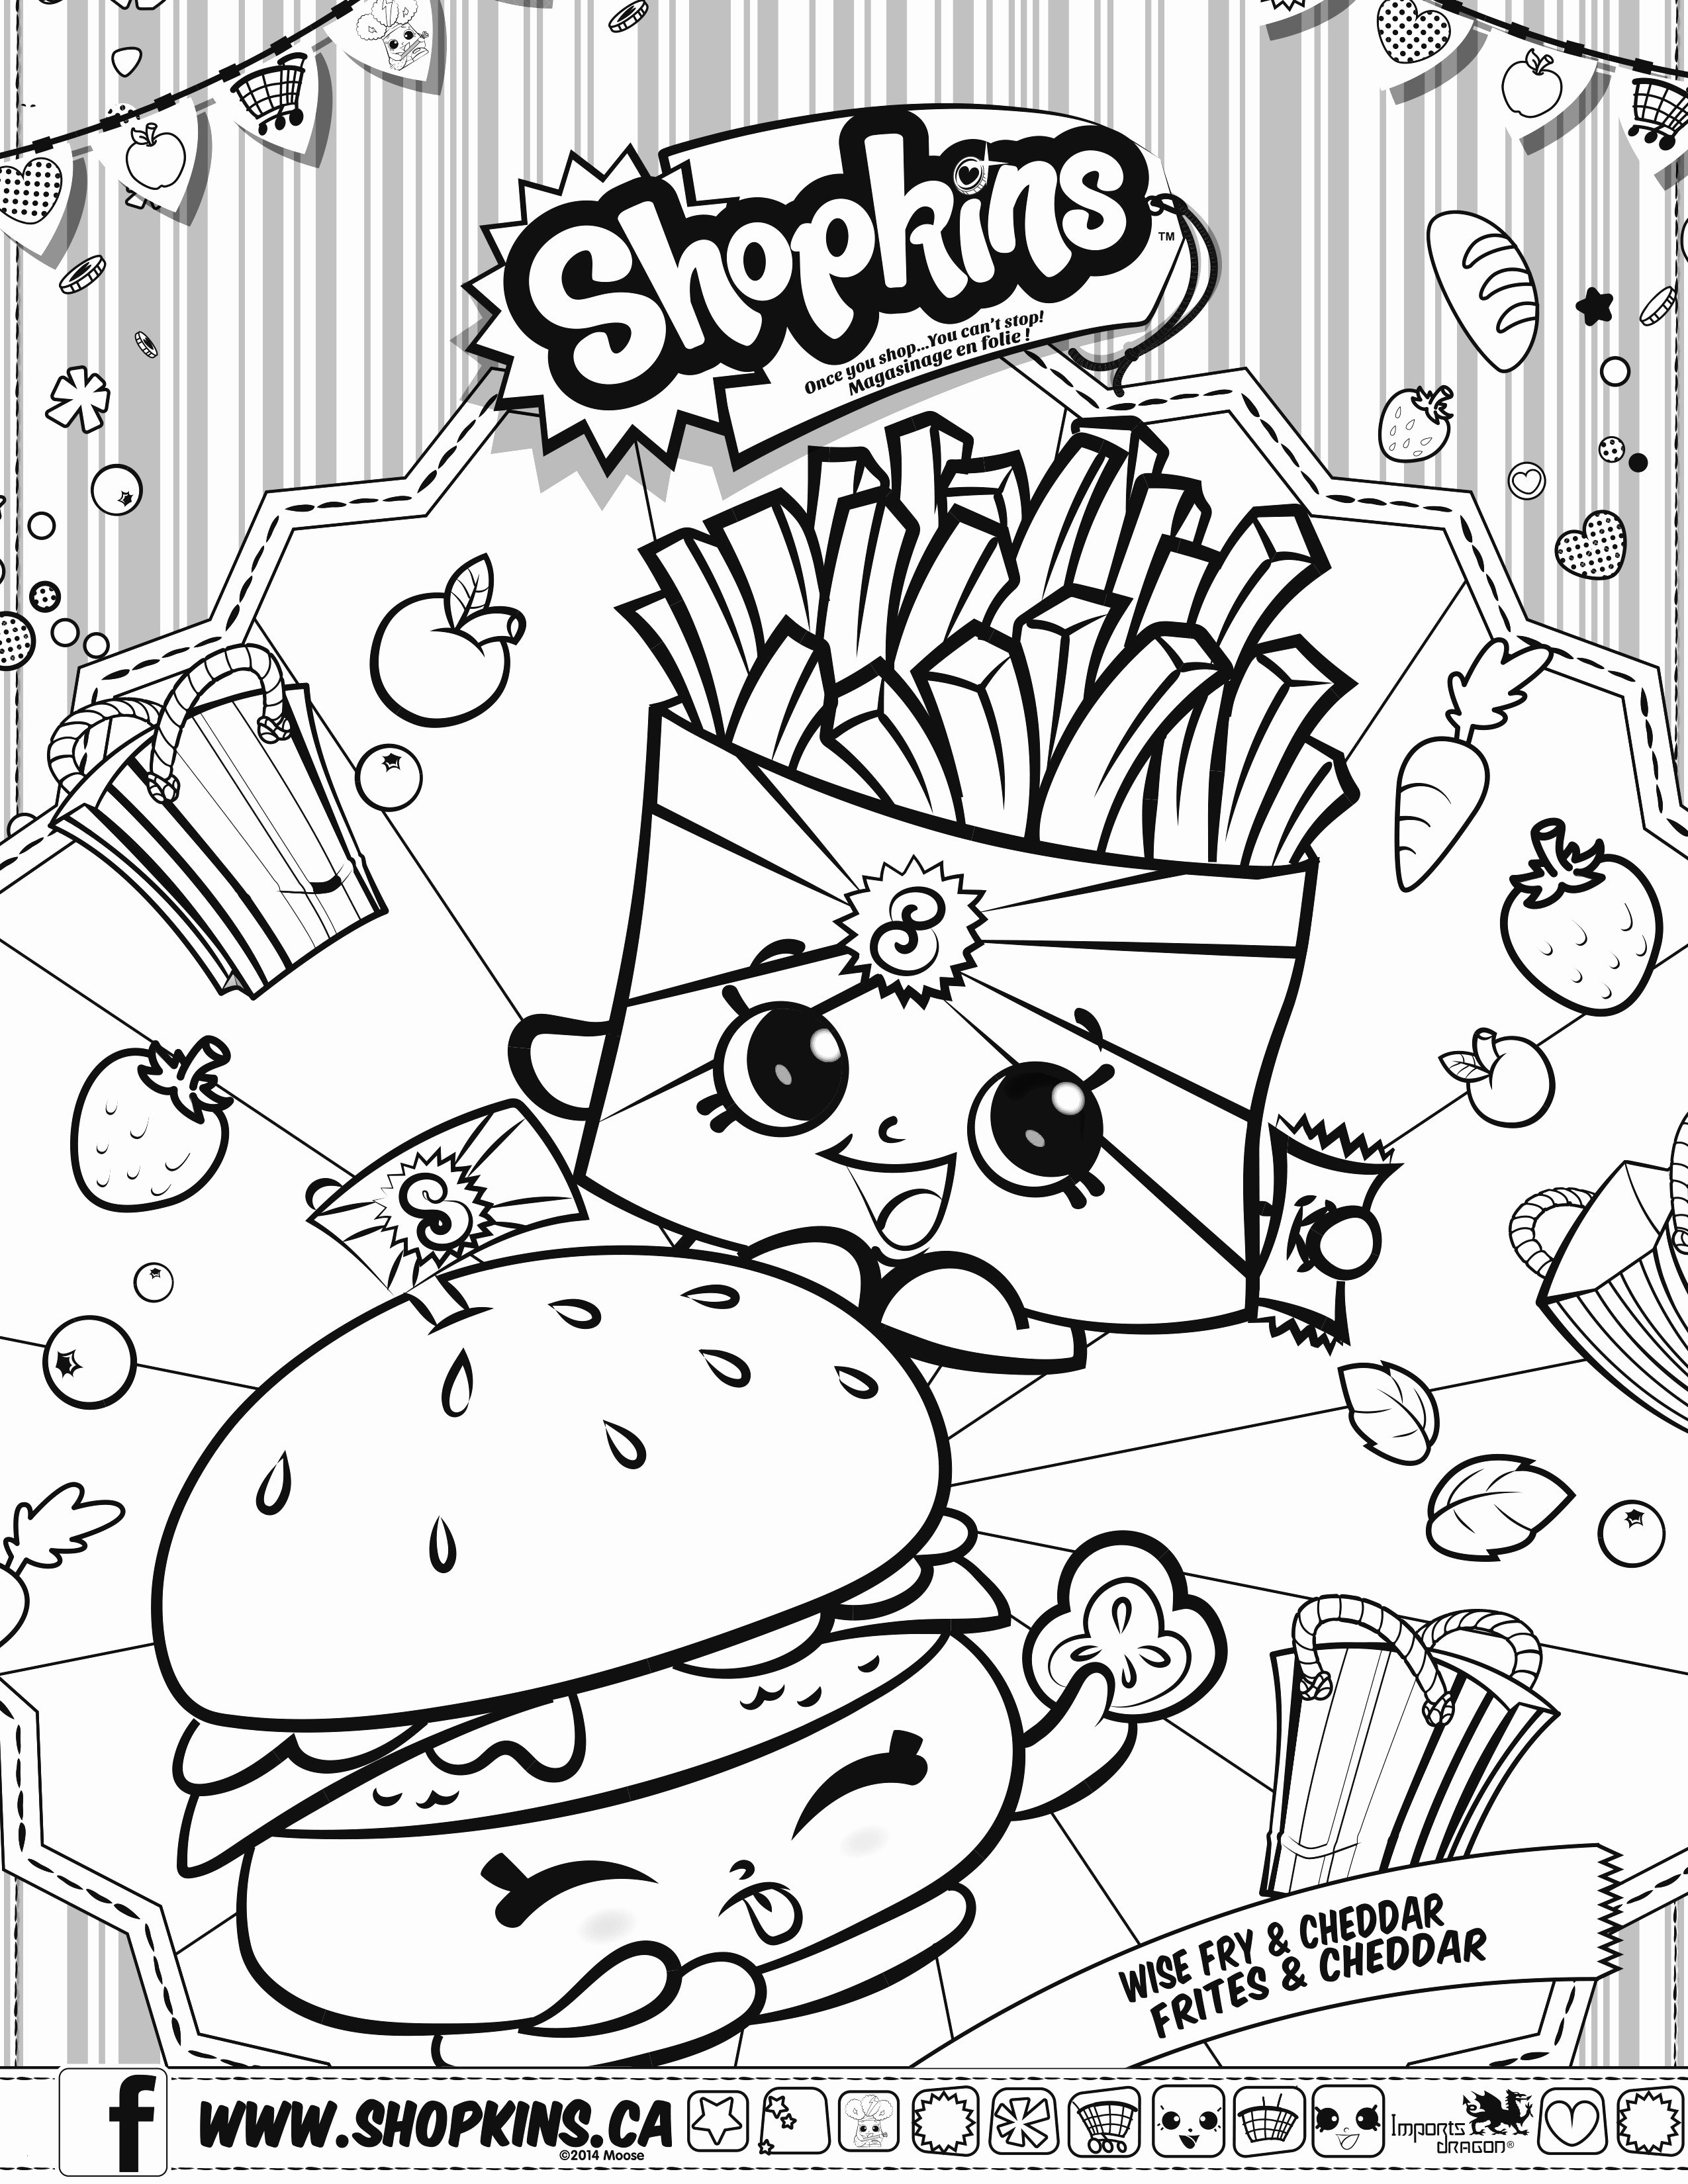 coloring pages for restaurants Collection-Restaurant Coloring Pages Nice Restaurant Coloring Pages Letramac 16-p